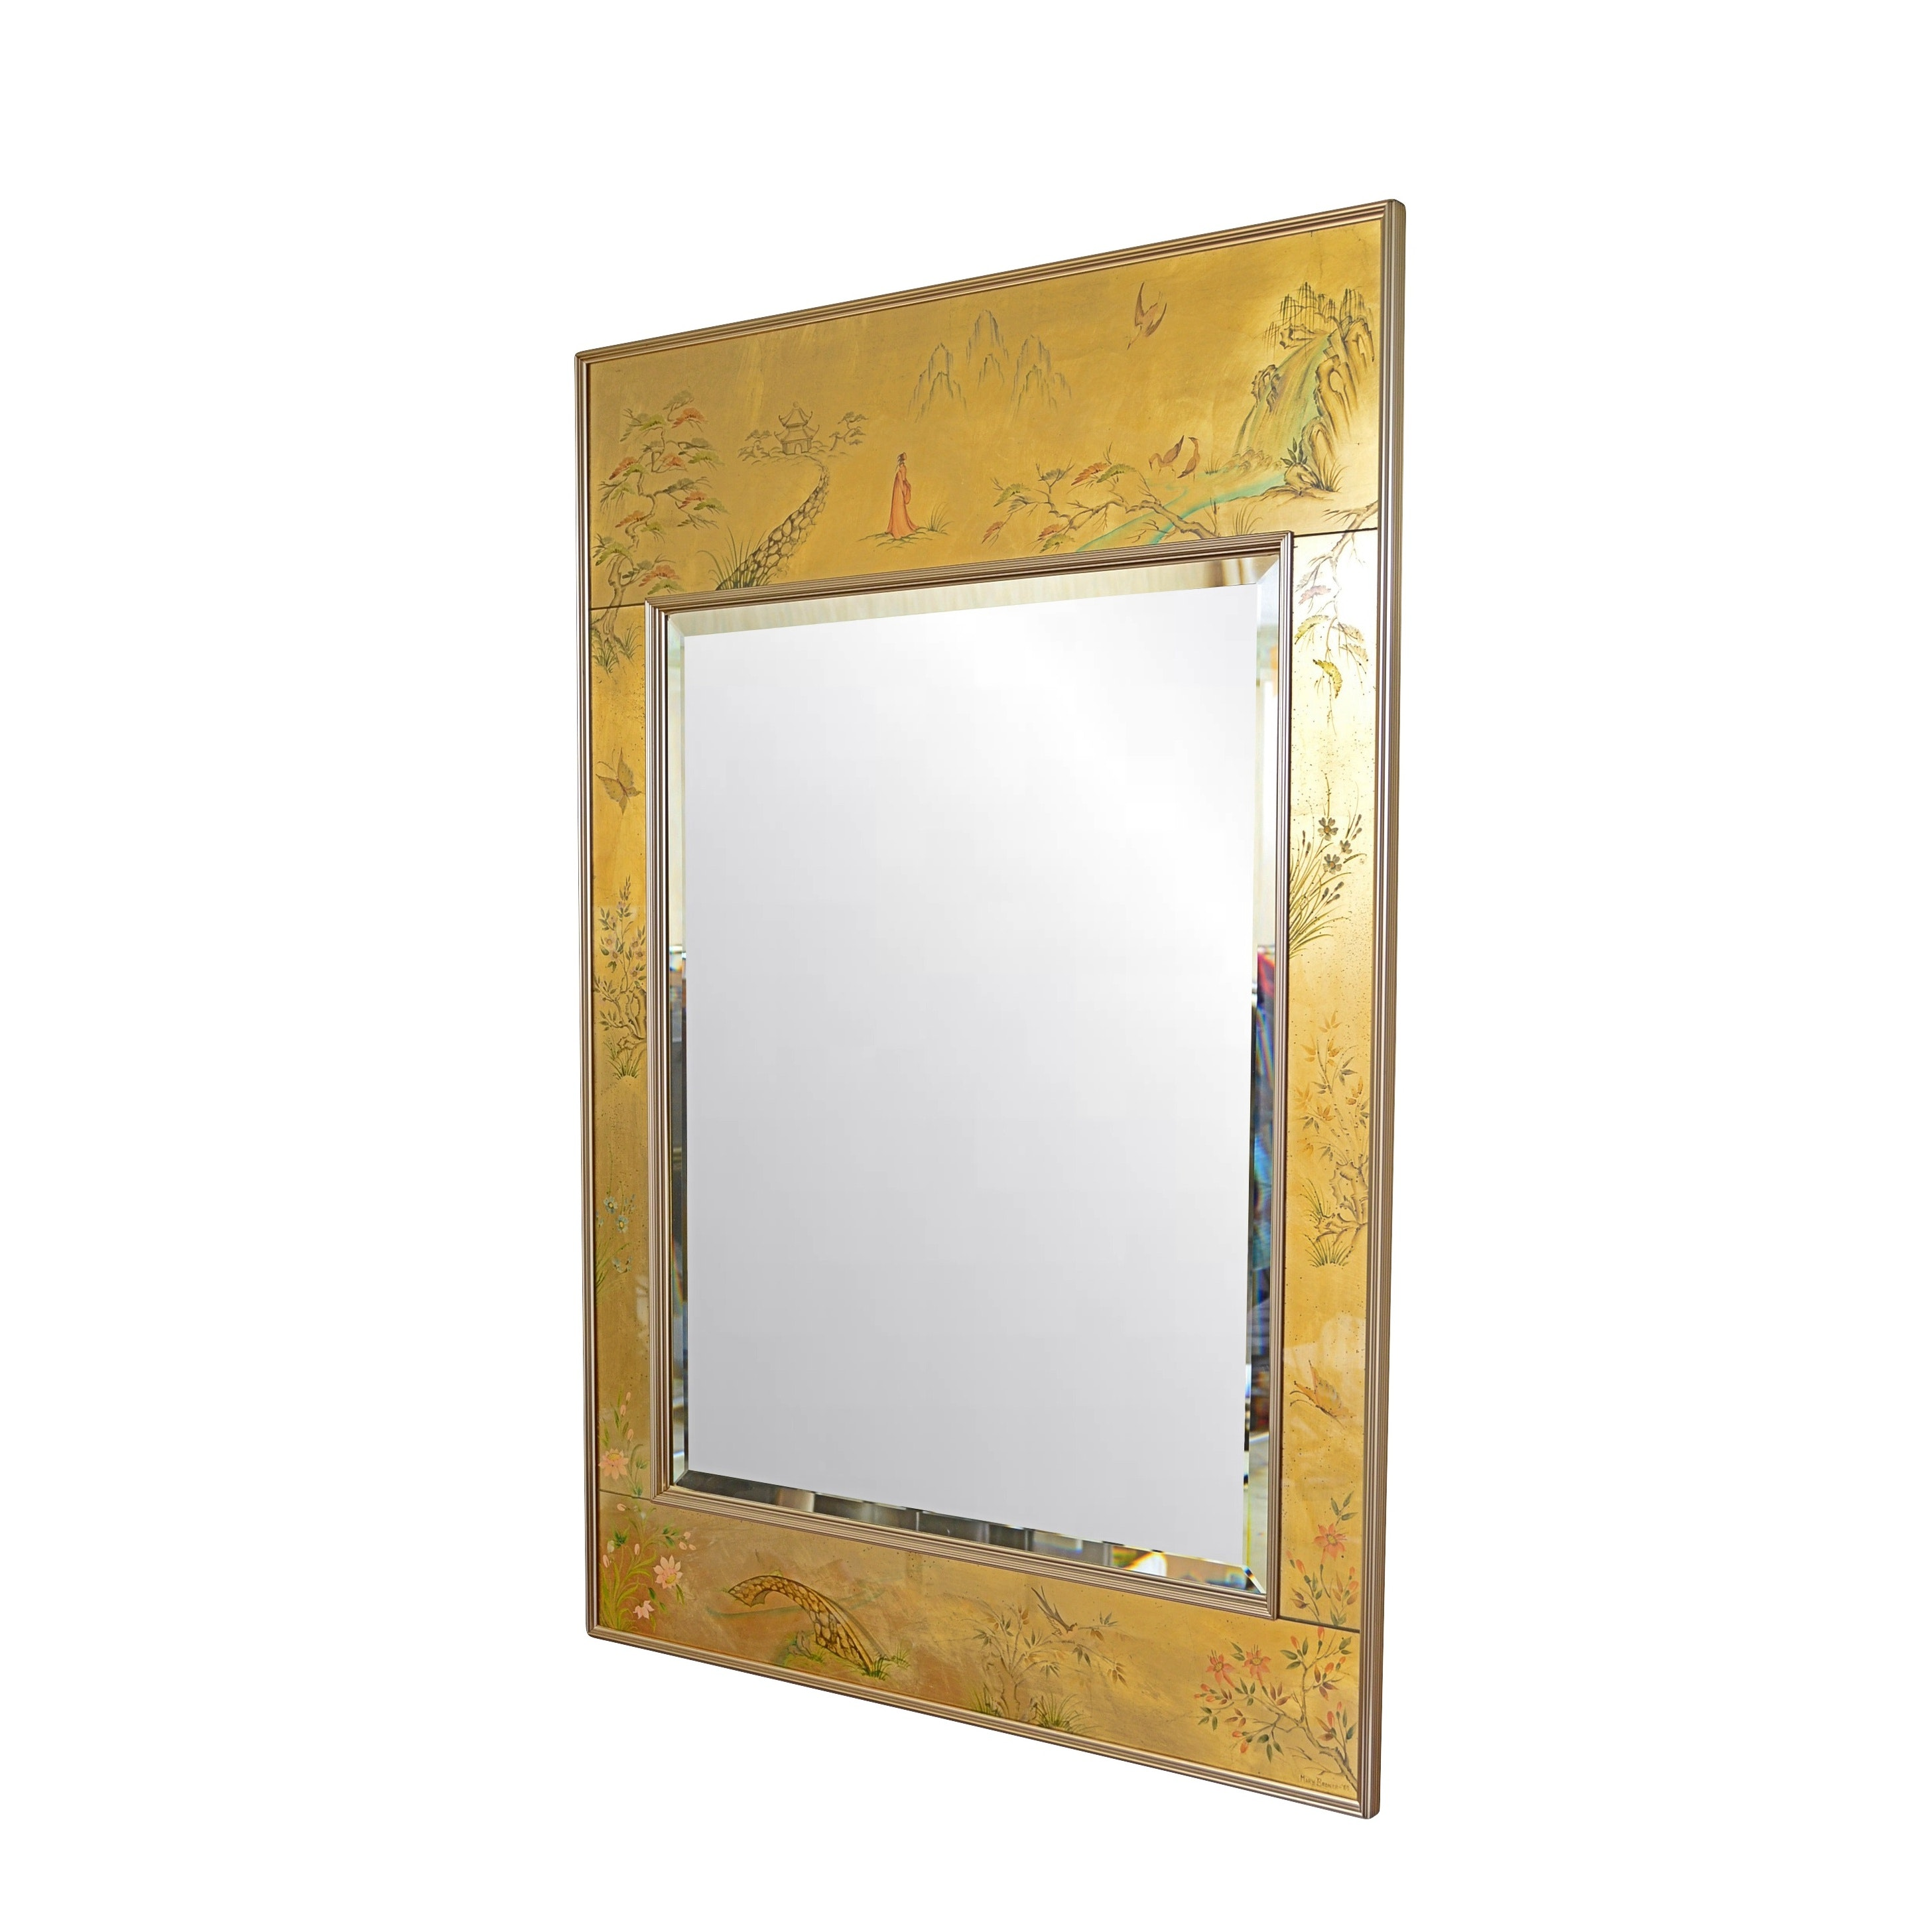 Chinoiserie Beveled Wall Mirror with Lacquered Frame